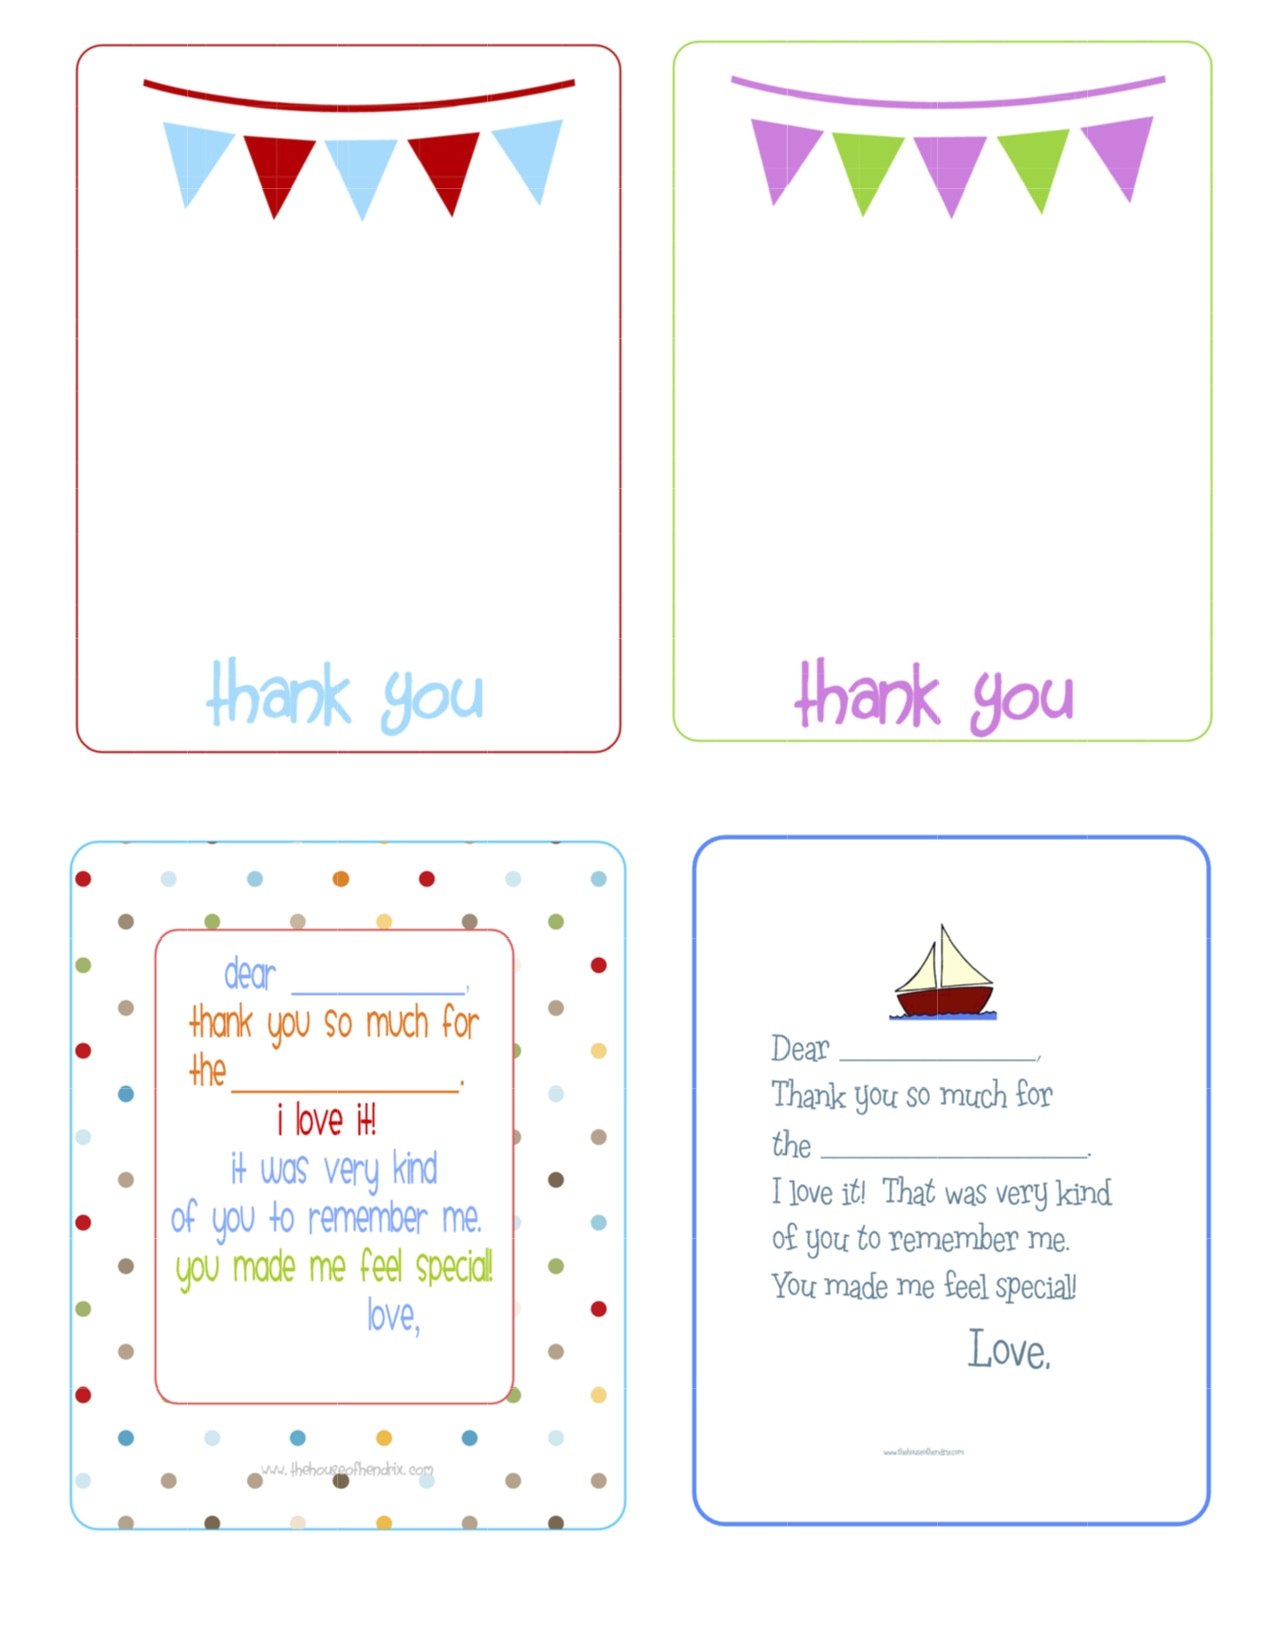 picture relating to Printable Thank You Cards for Students referred to as Printable Thank Oneself playing cards - The Place of Hendrix